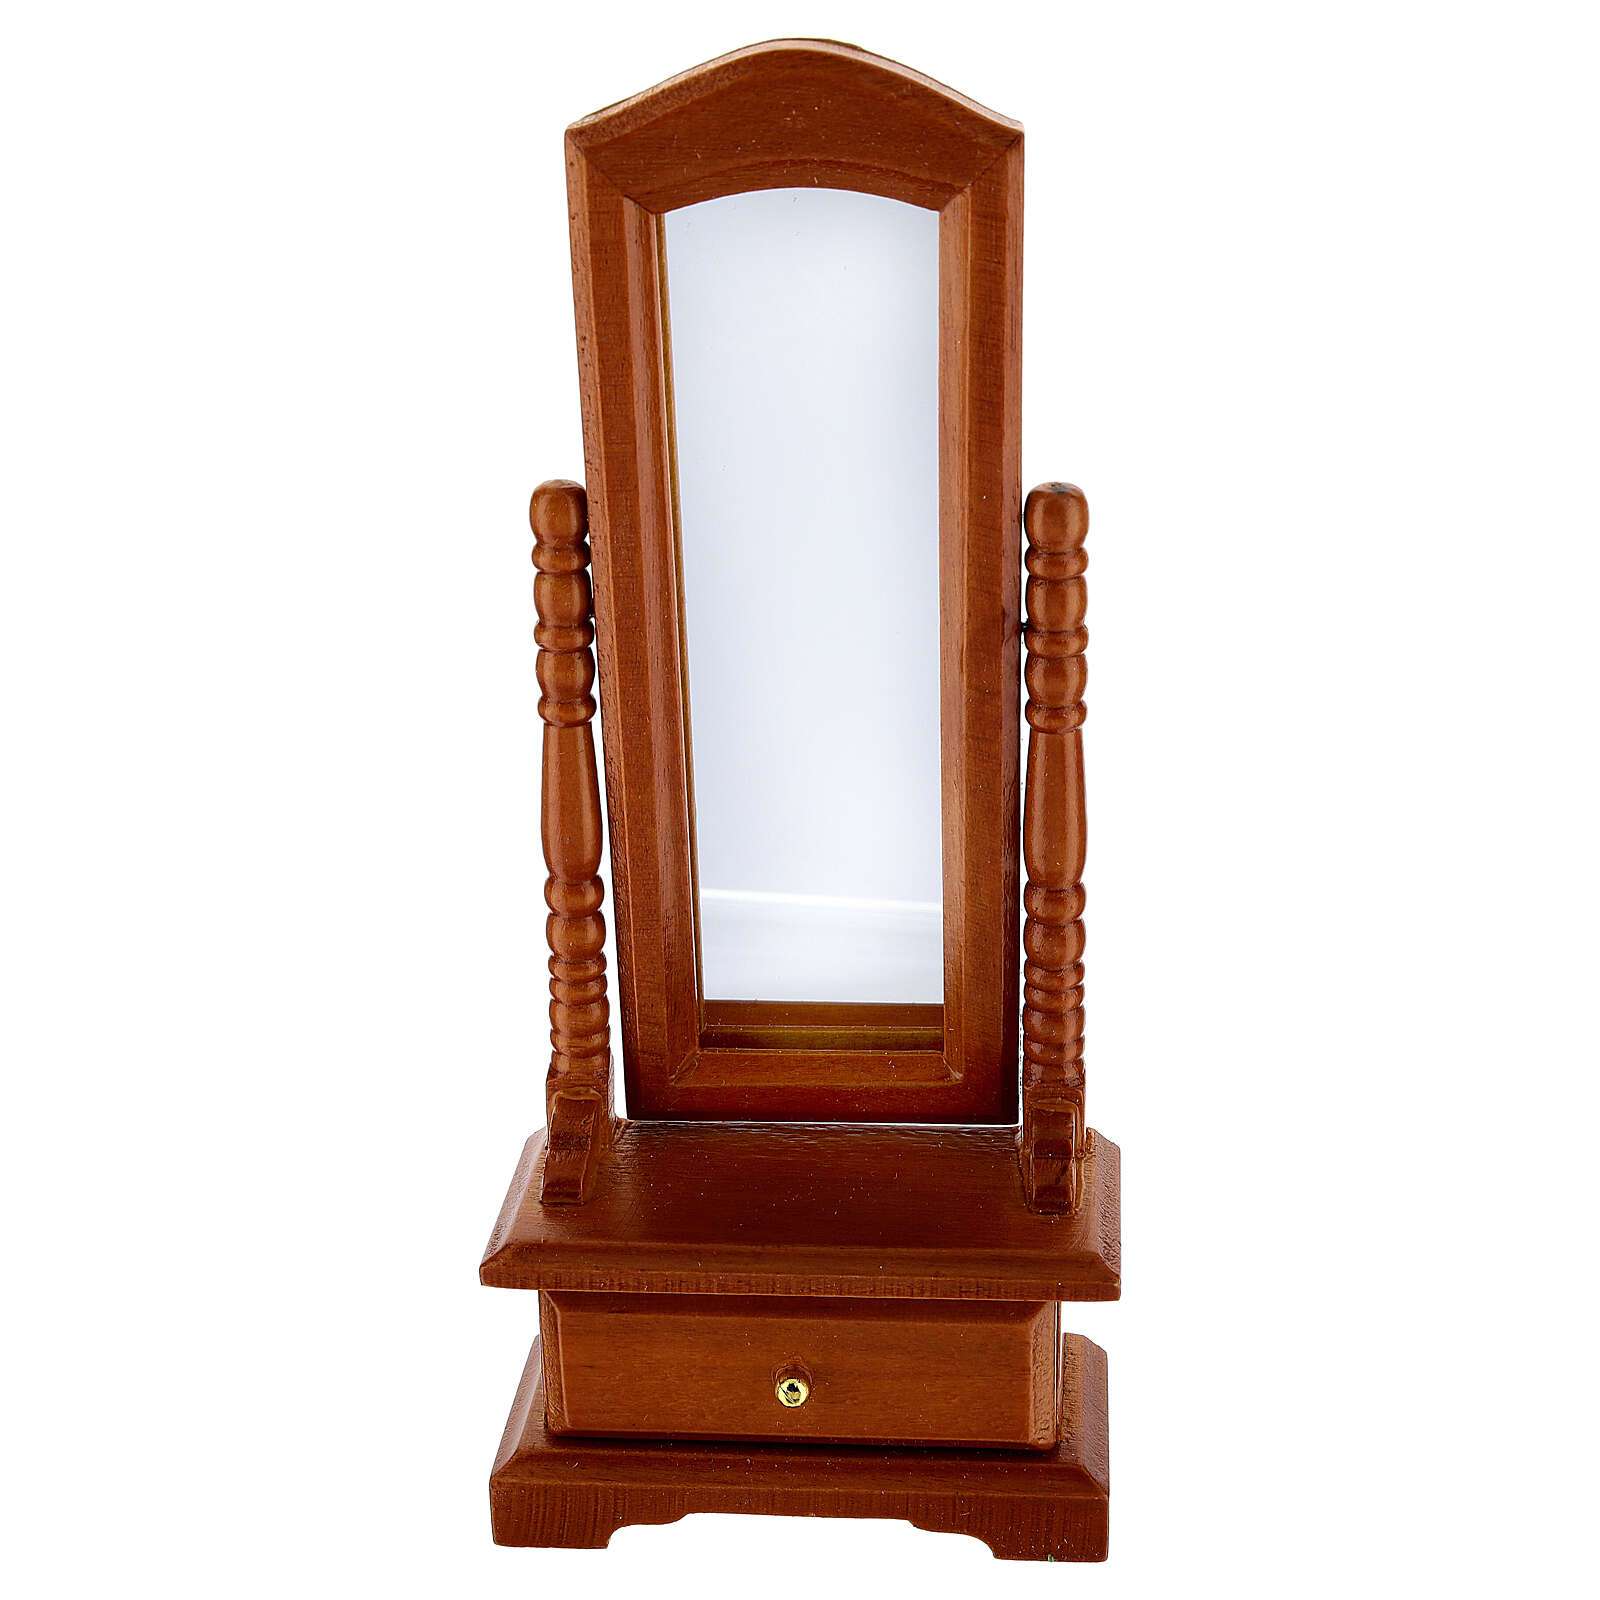 Mirror with drawer for Nativity Scene with 10-12 cm figurines 4